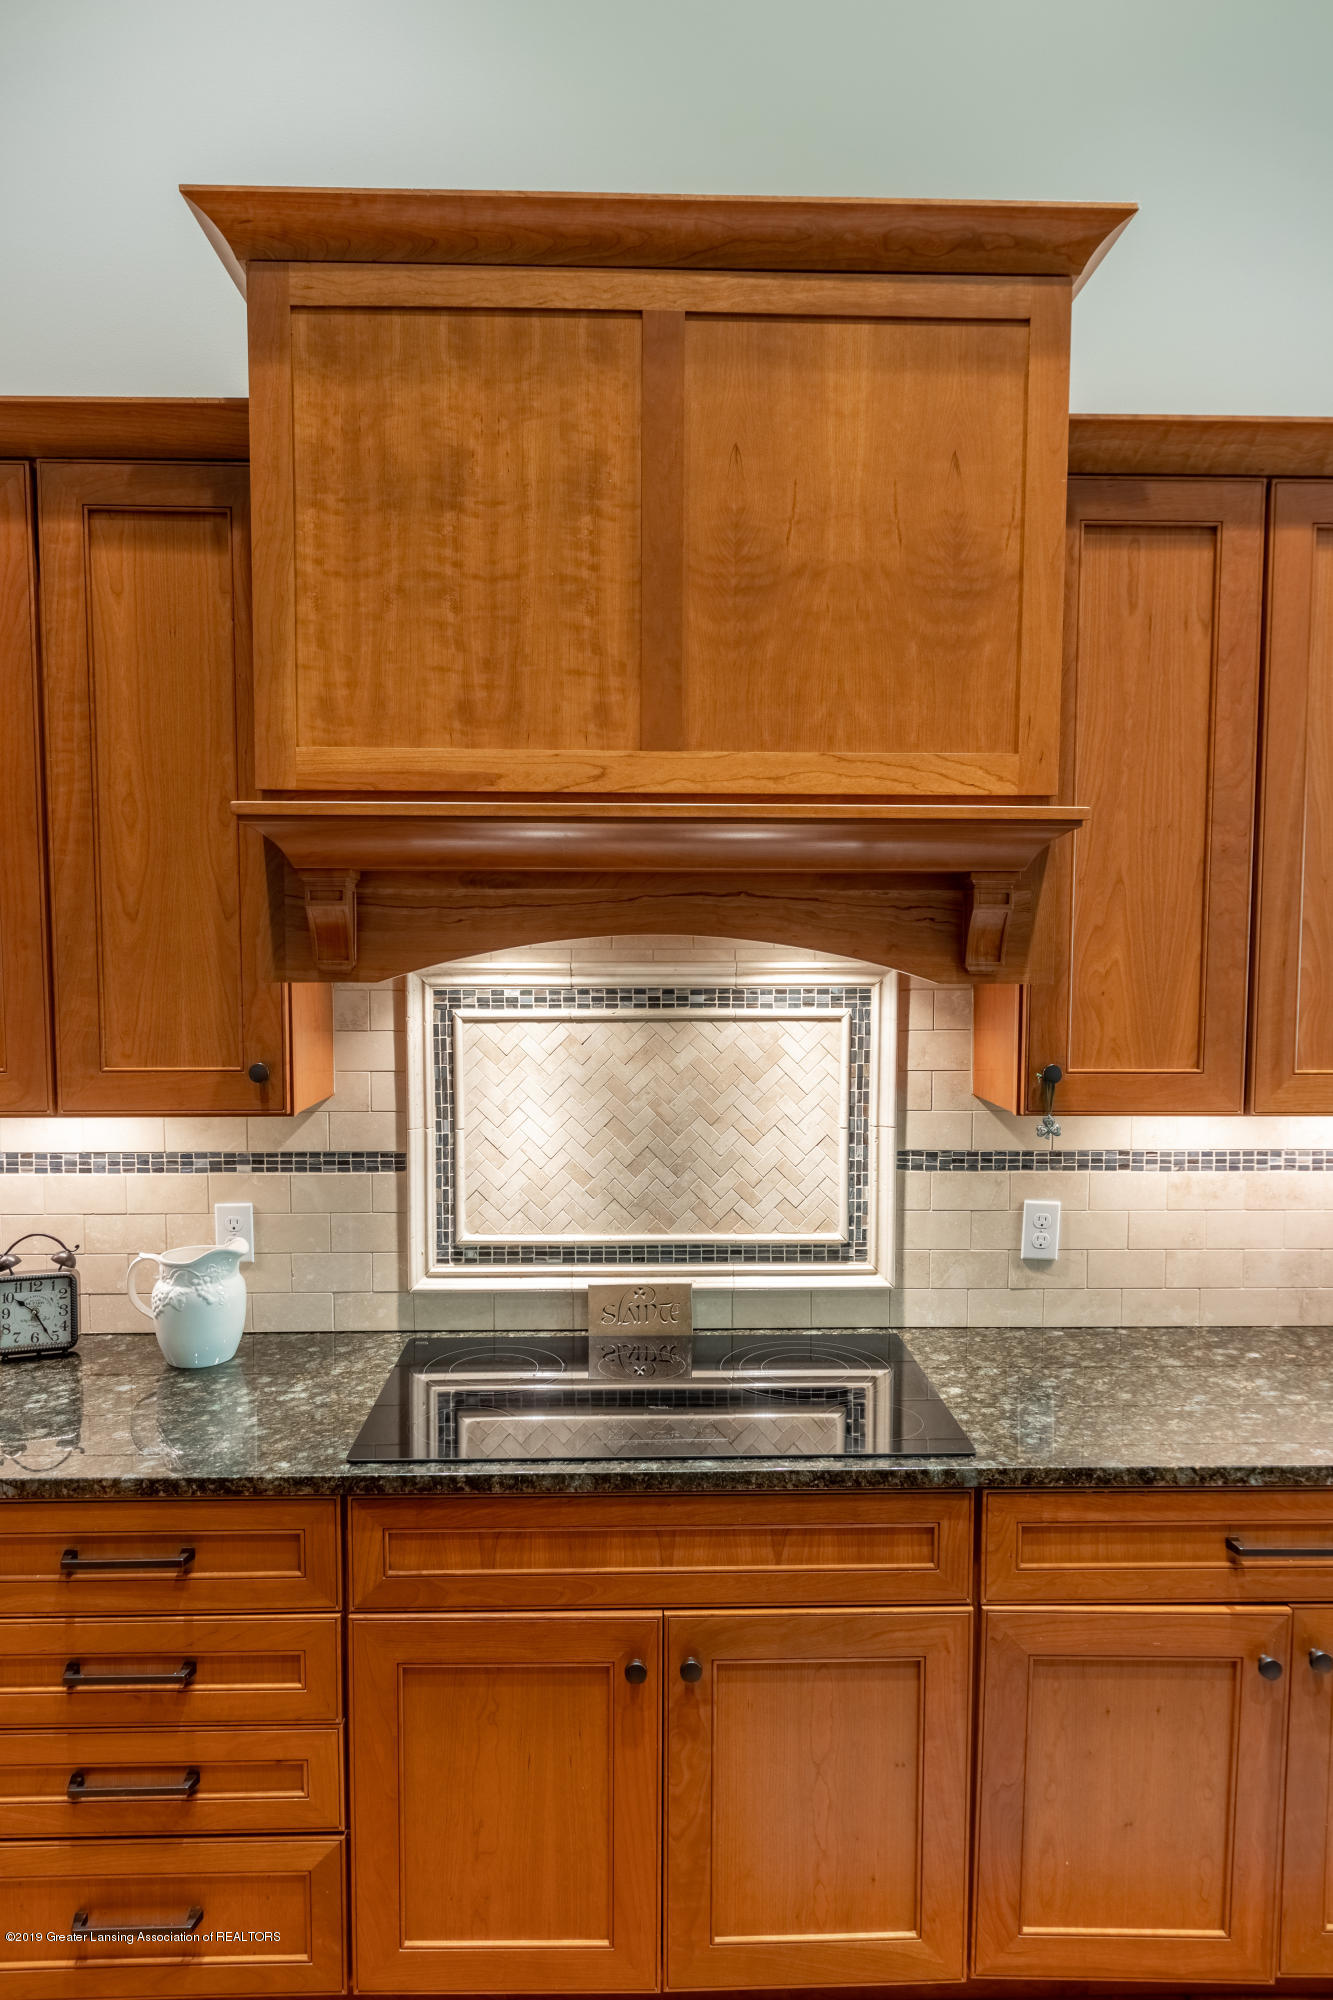 6155 Graebear Trail - Pretty tiled backsplash - 15